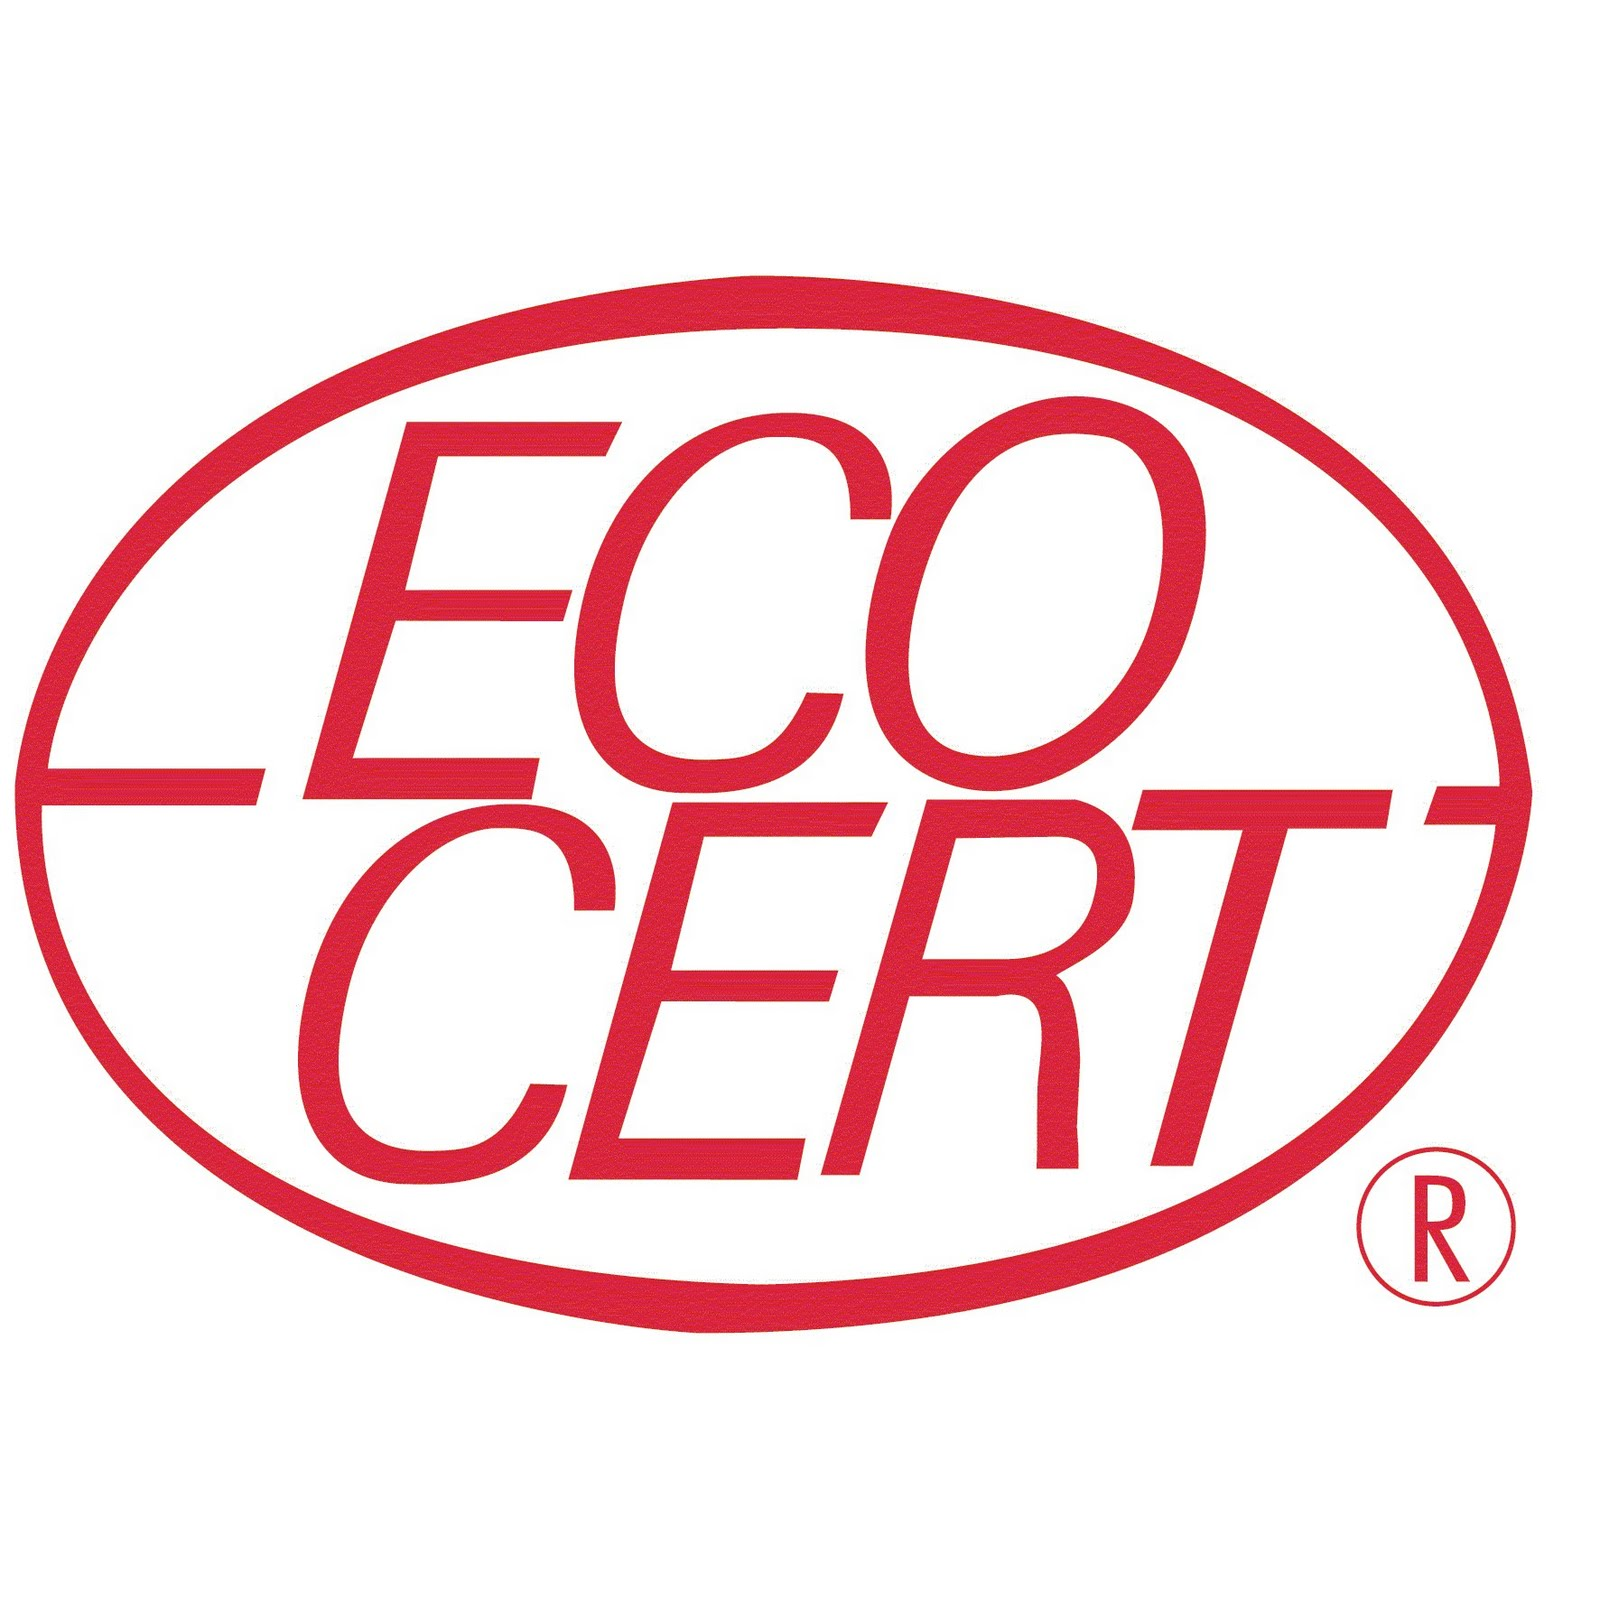 LABEL ÉCOCERT